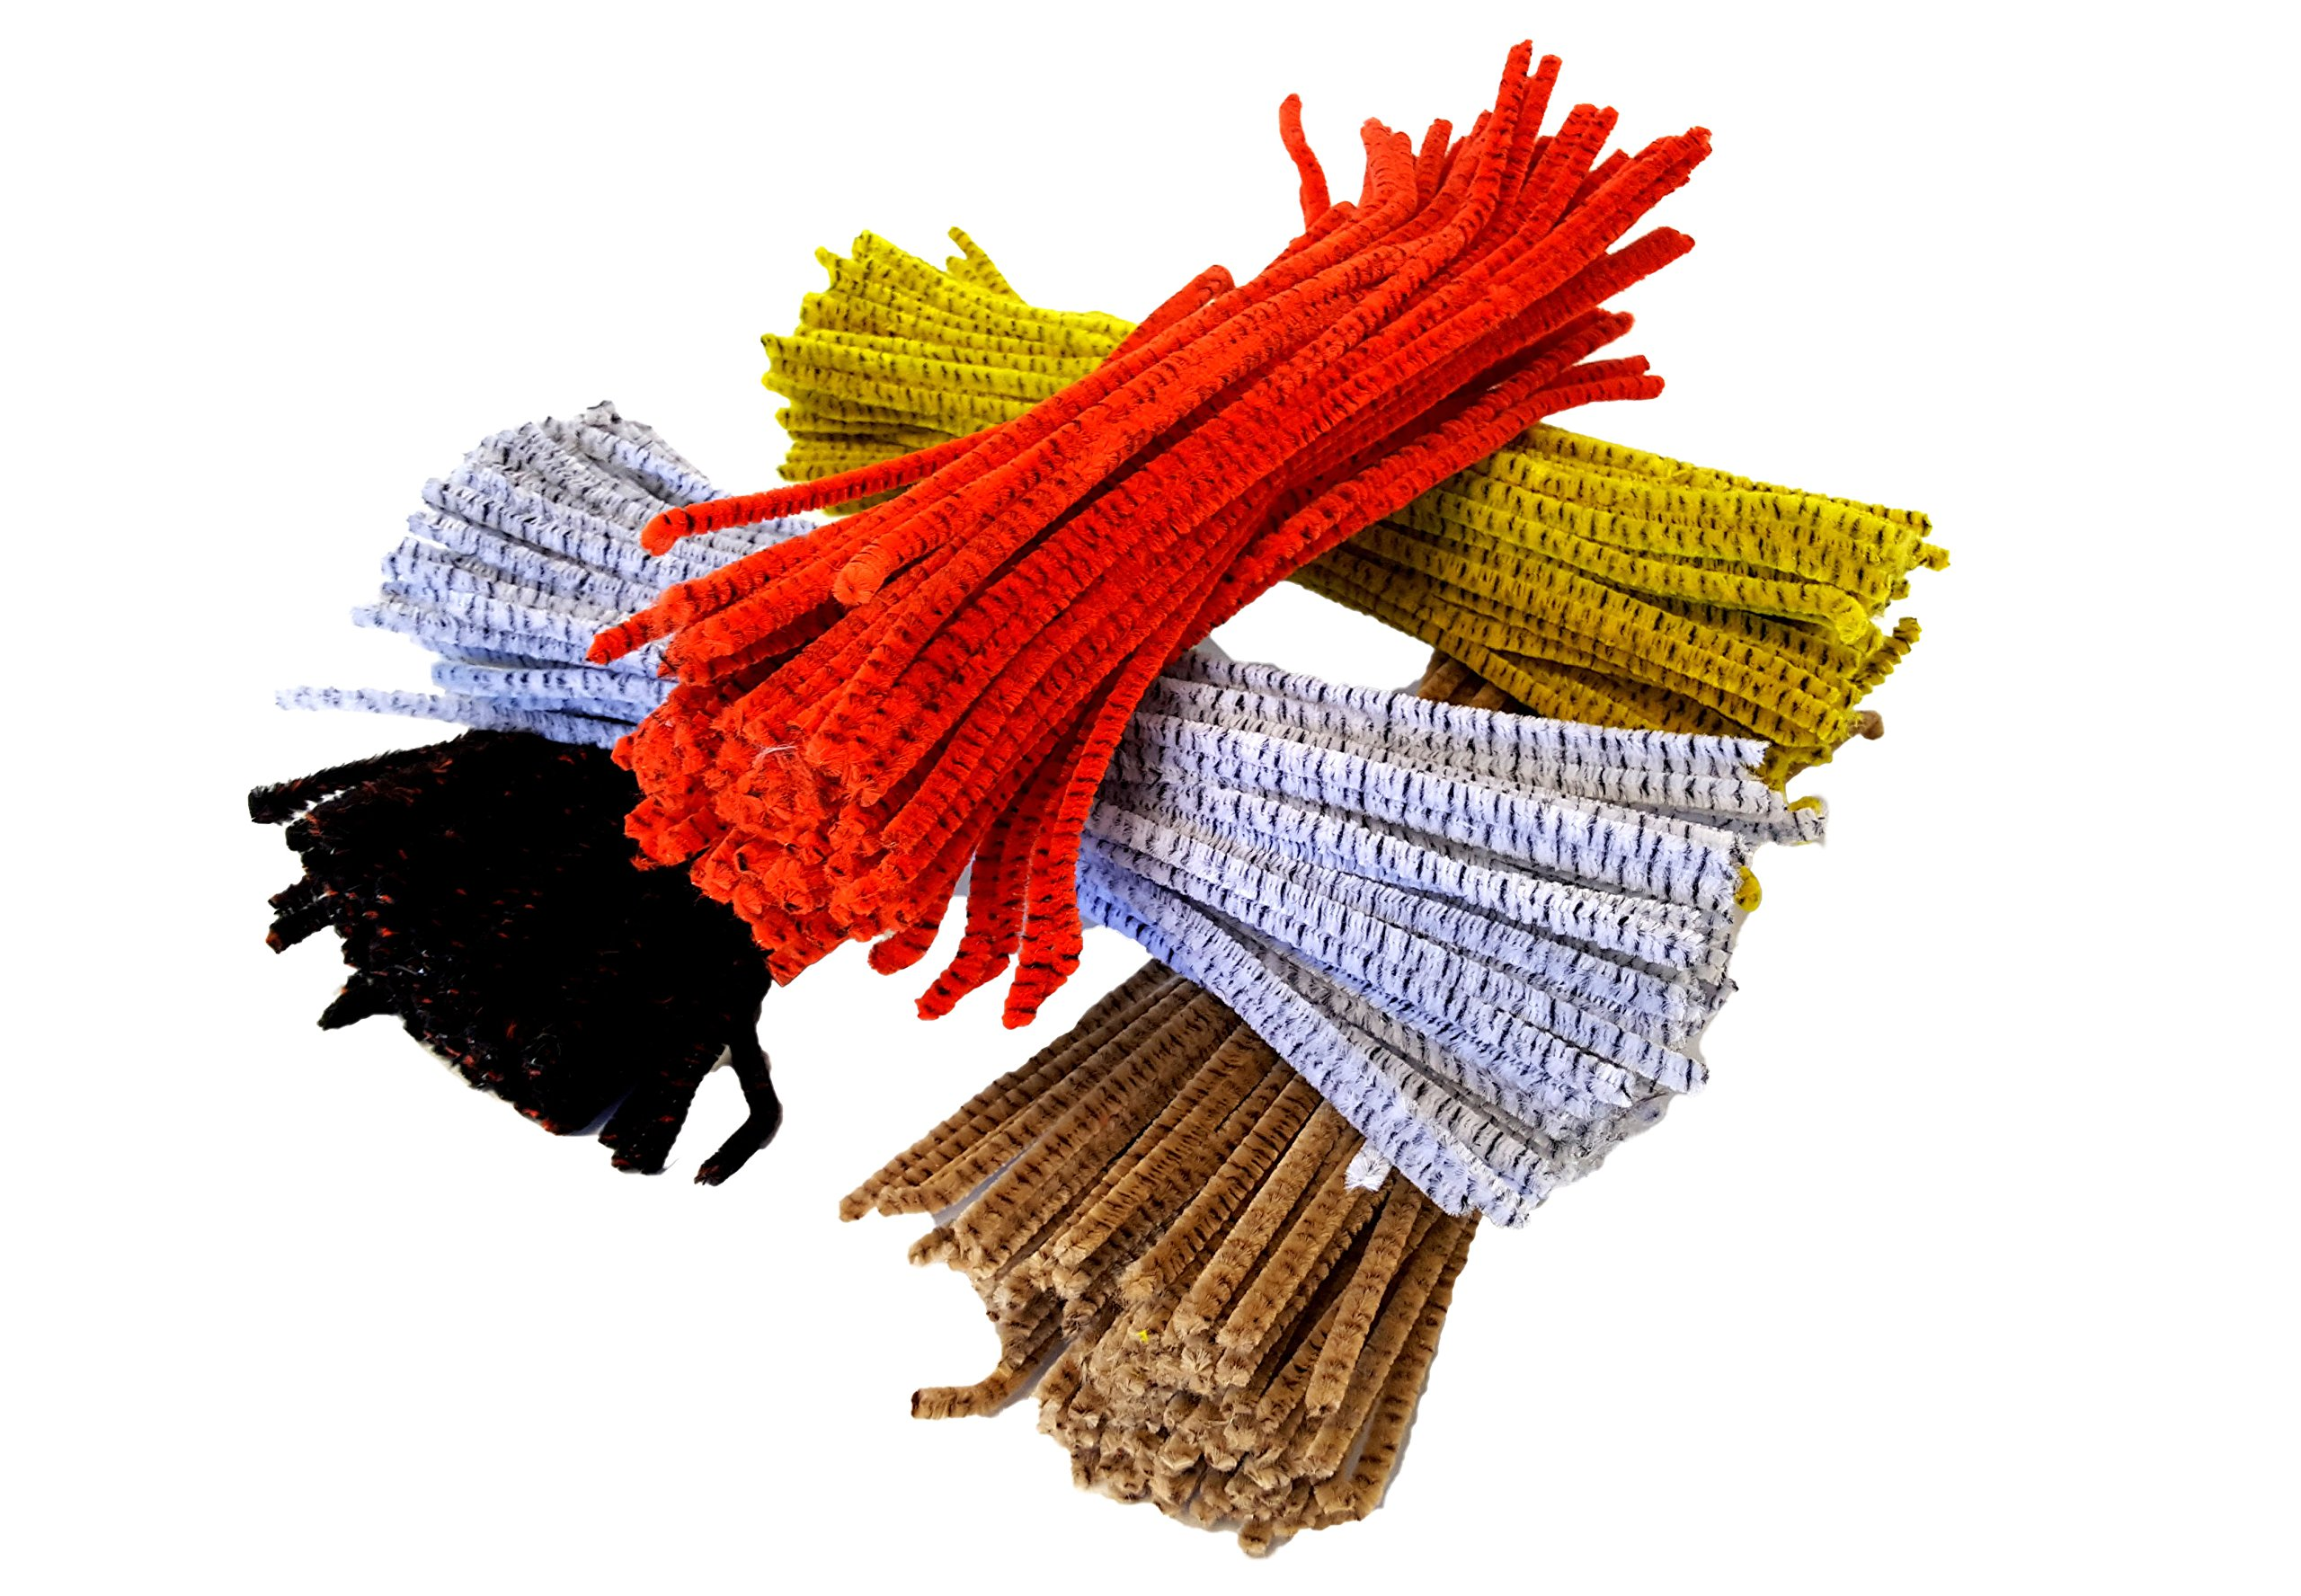 Playscene' Jumbo DIY Craft Kit, Pompons, Pipe Cleaners, Wiggle Eyes, Huge Selection Craft Kit (Pipe Cleaners - 12 Packs)